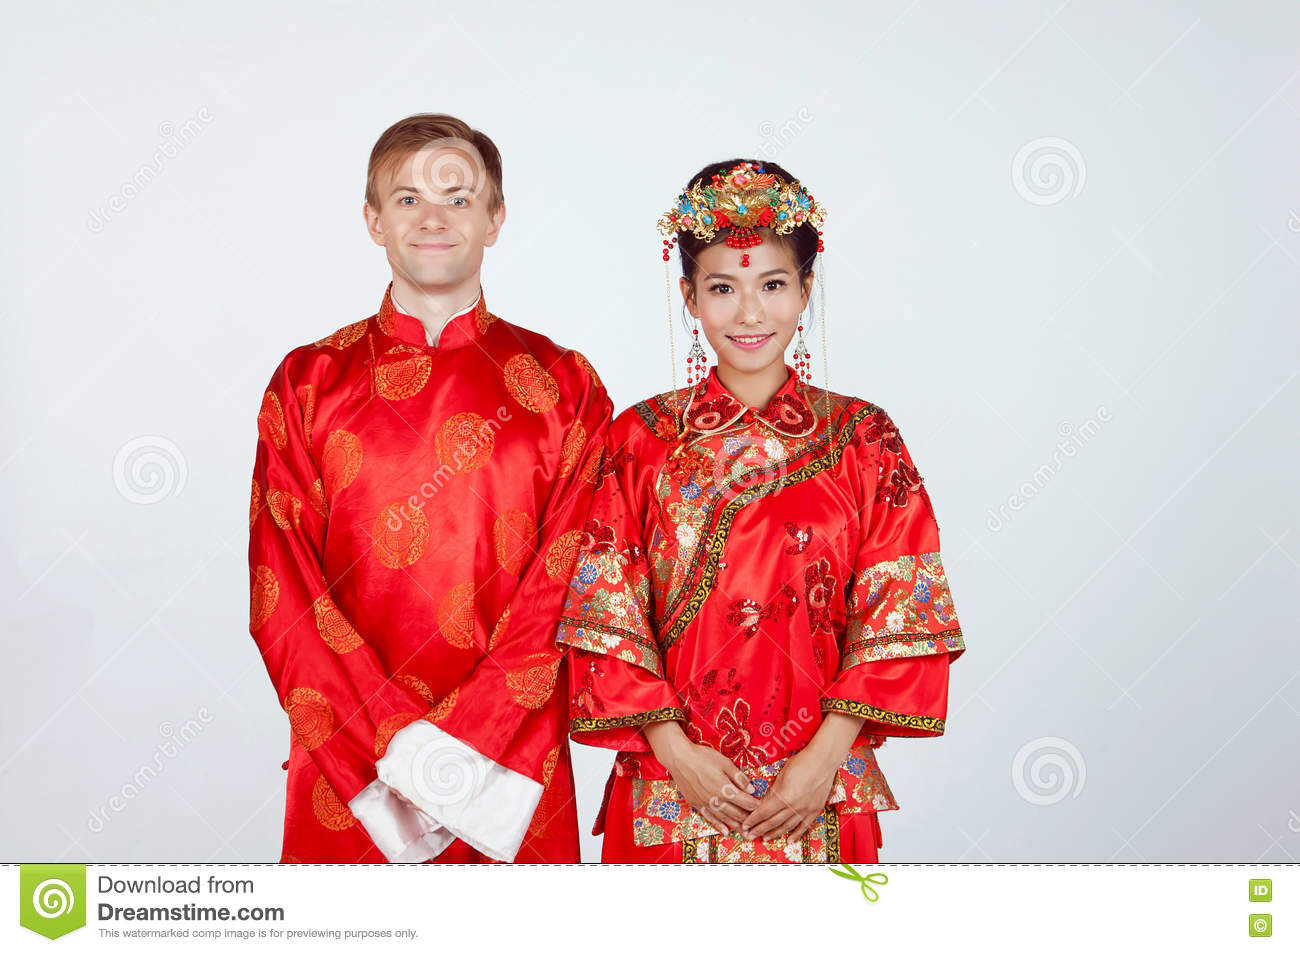 535fbc58f53e0 Mixed Race Bride and Groom in Studio wearing traditional Chinese wedding  outfits